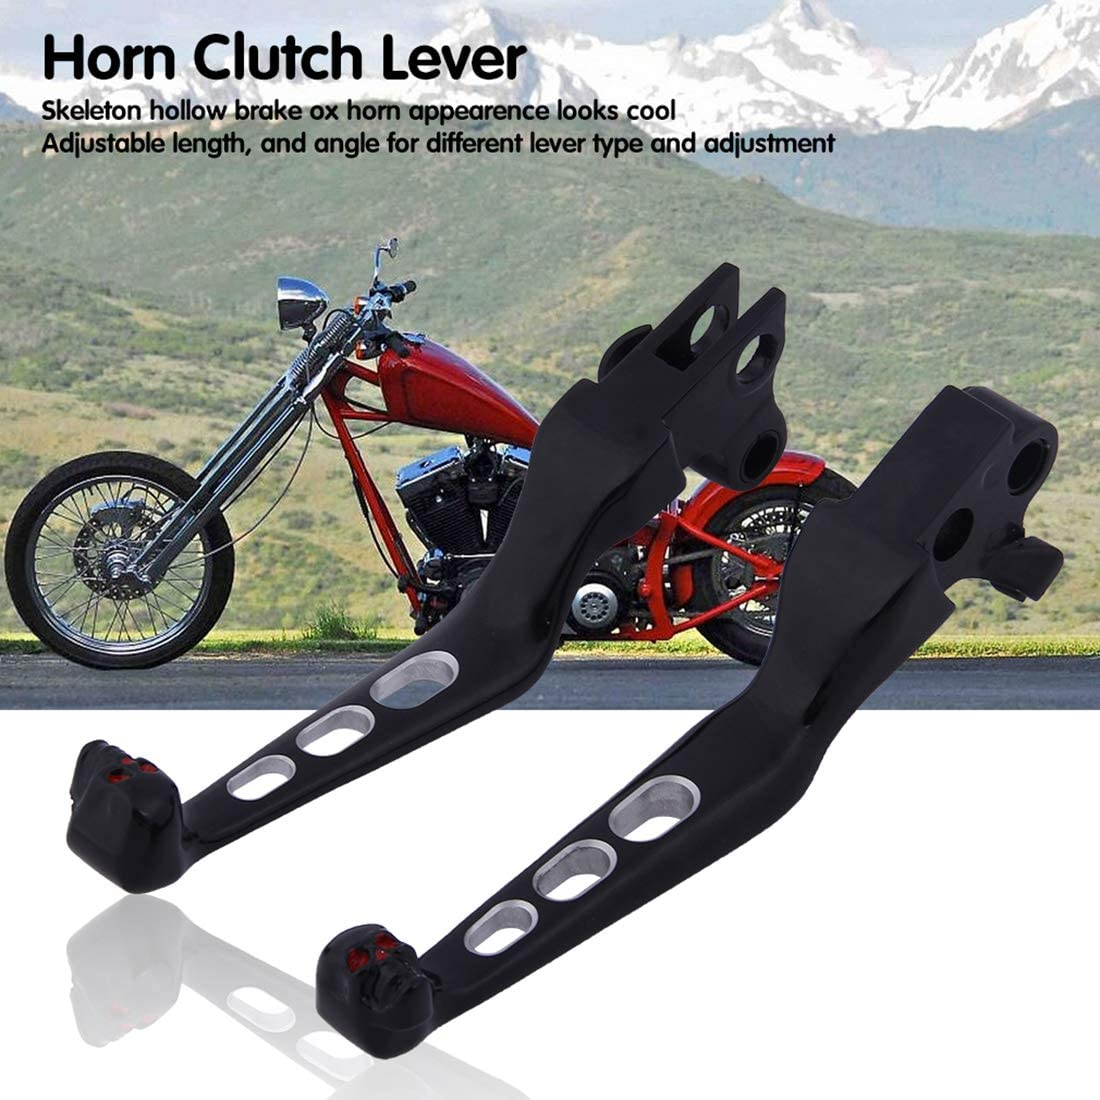 YCDTMY Motorcycle Refitted Ox Horn Clutch Lever